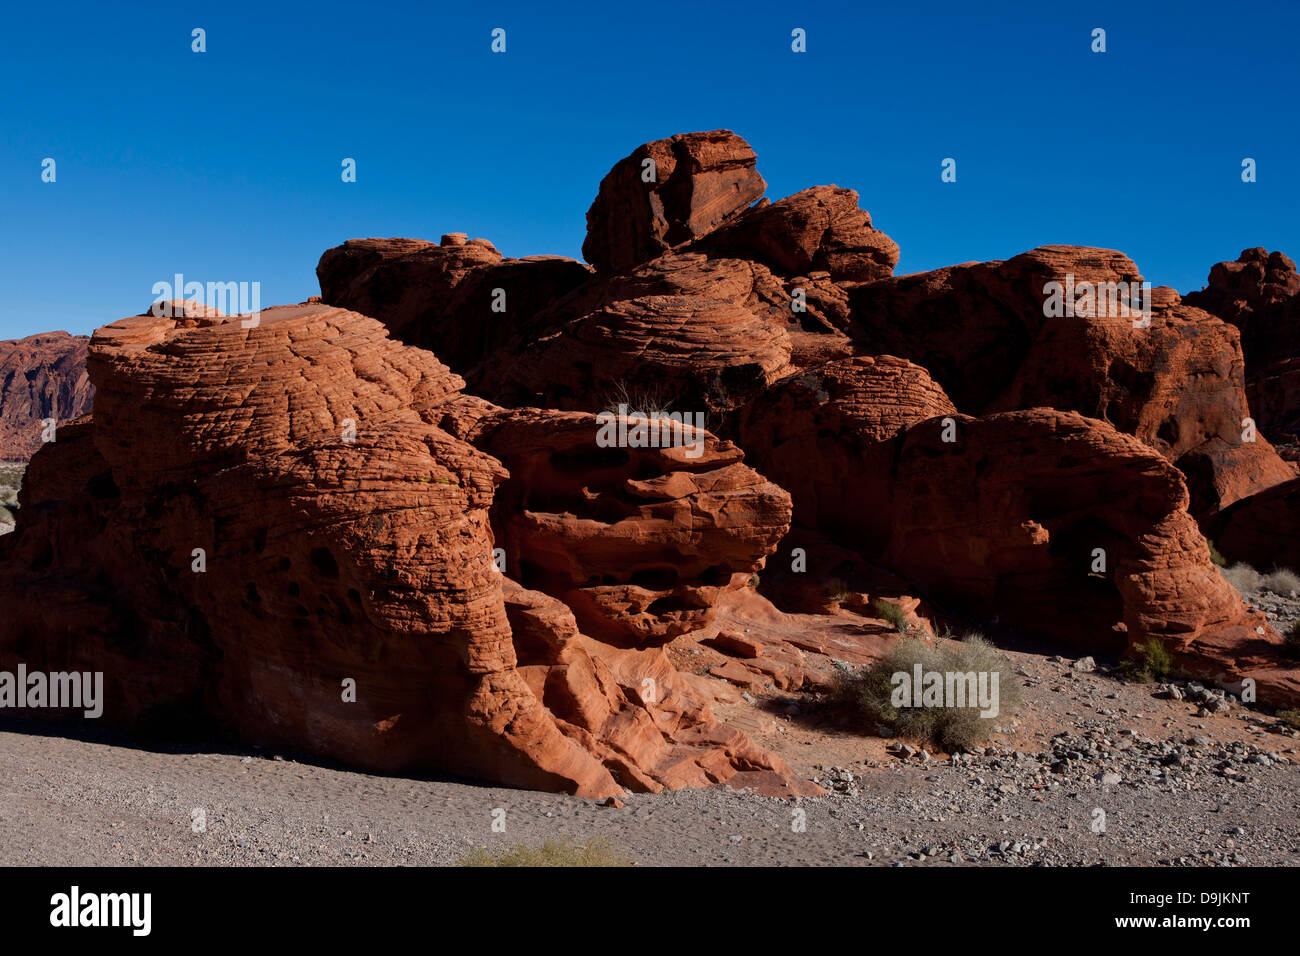 The Beehives, red sandstone rock formations, Valley of Fire State Park, Nevada, United States of America - Stock Image